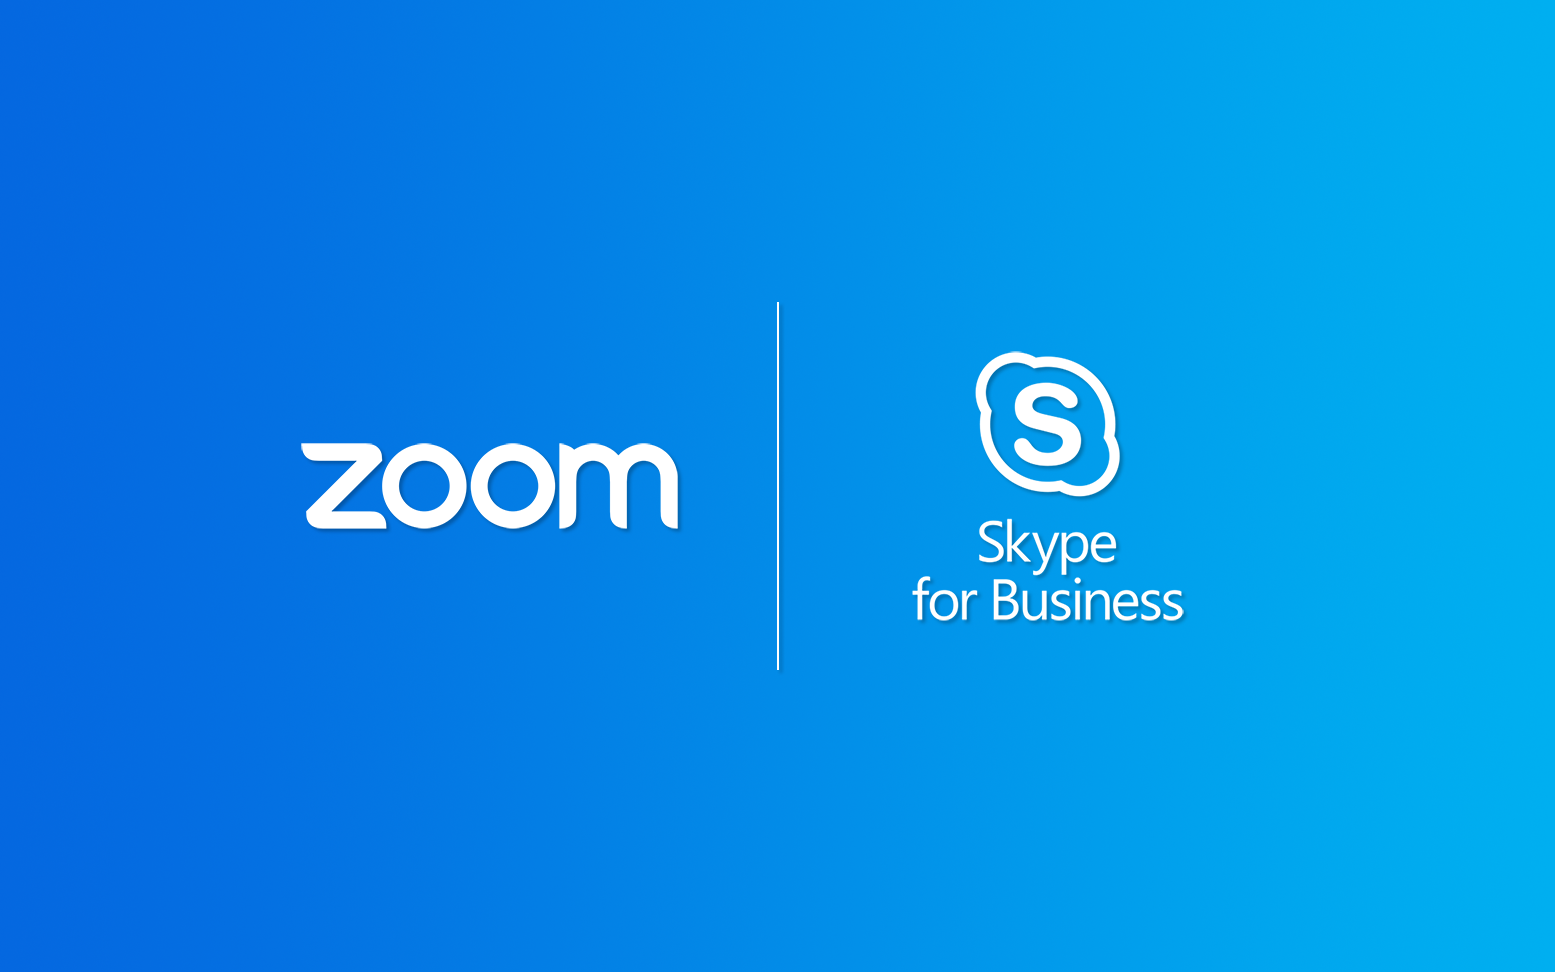 Zoom S New Native Skype For Business Interoperability